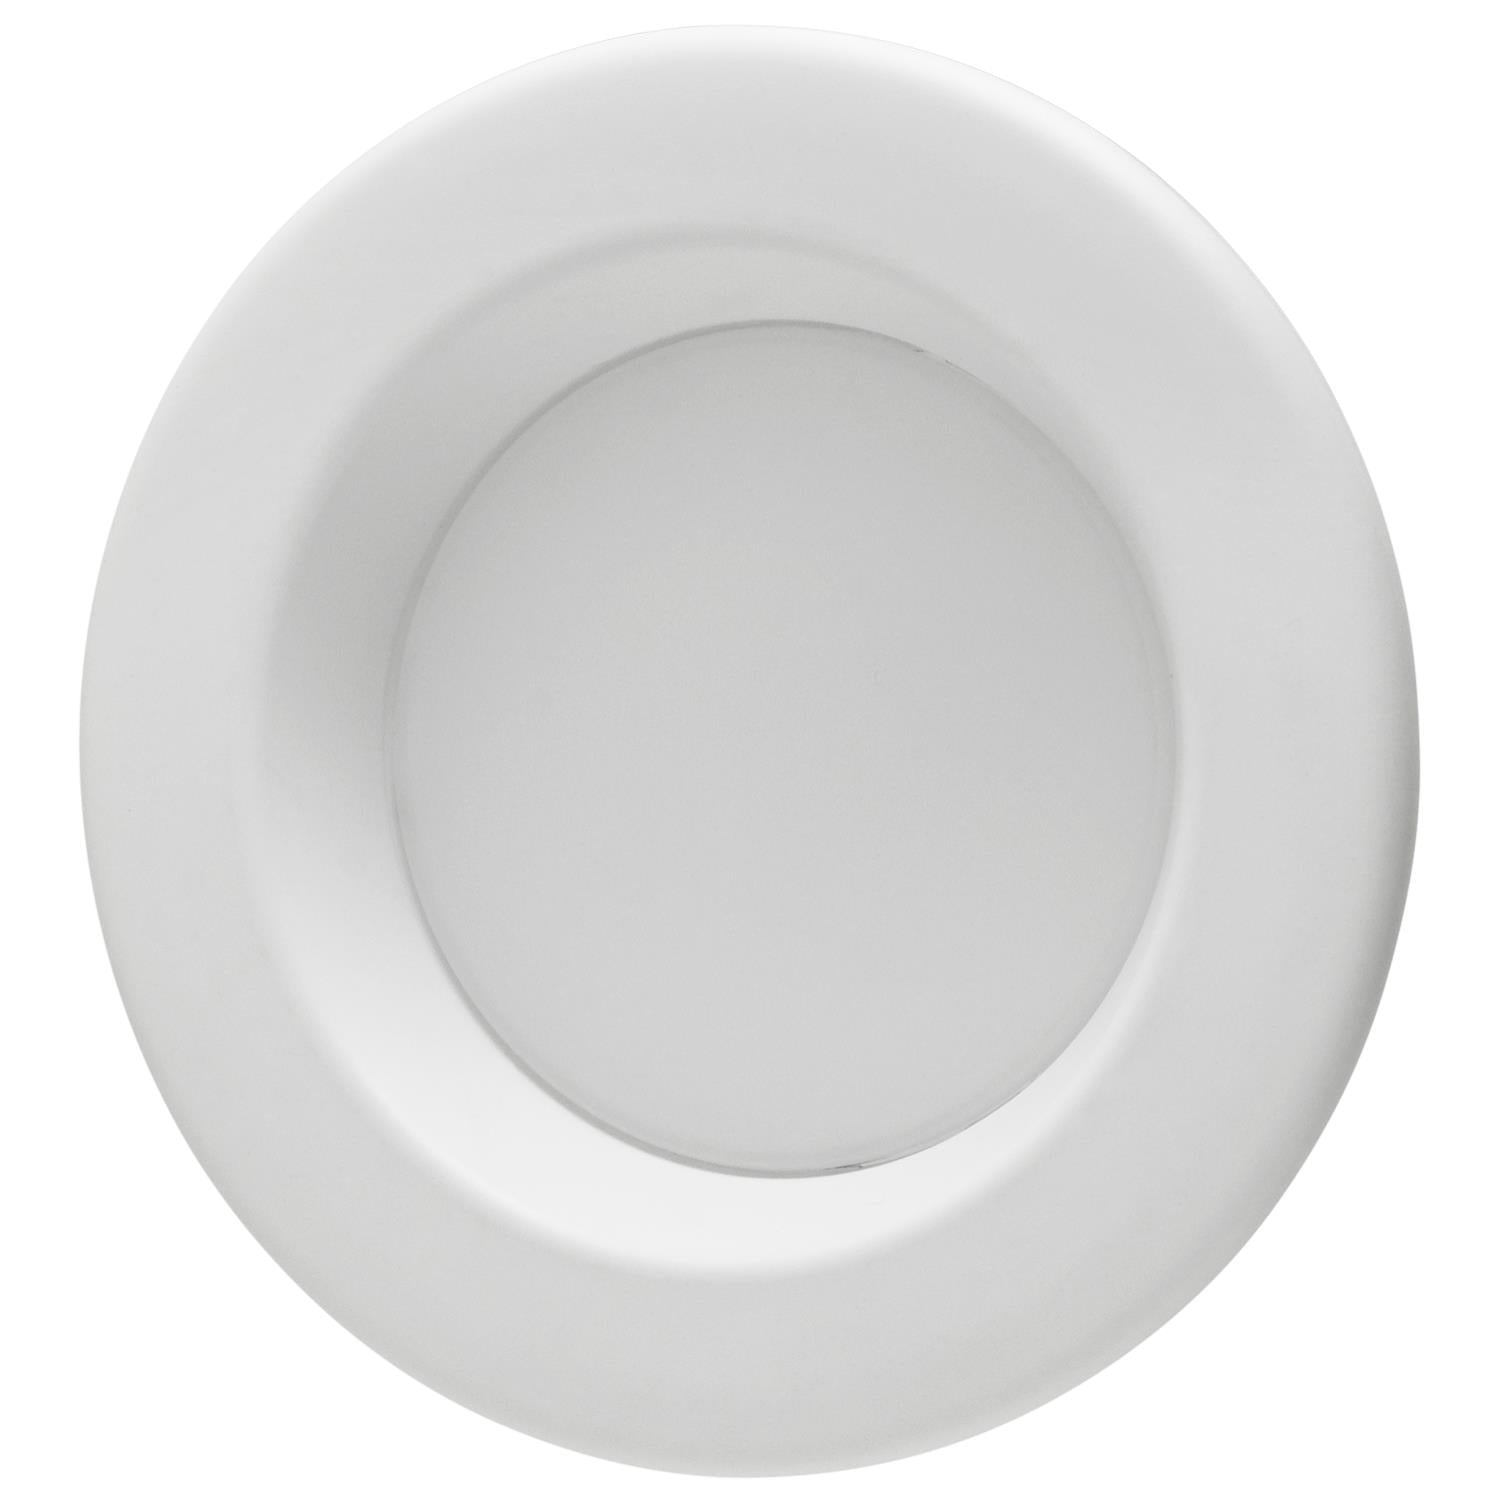 SUNLITE 3in 10w 3000K LED Downlight Retrofit with E26 Medium Base